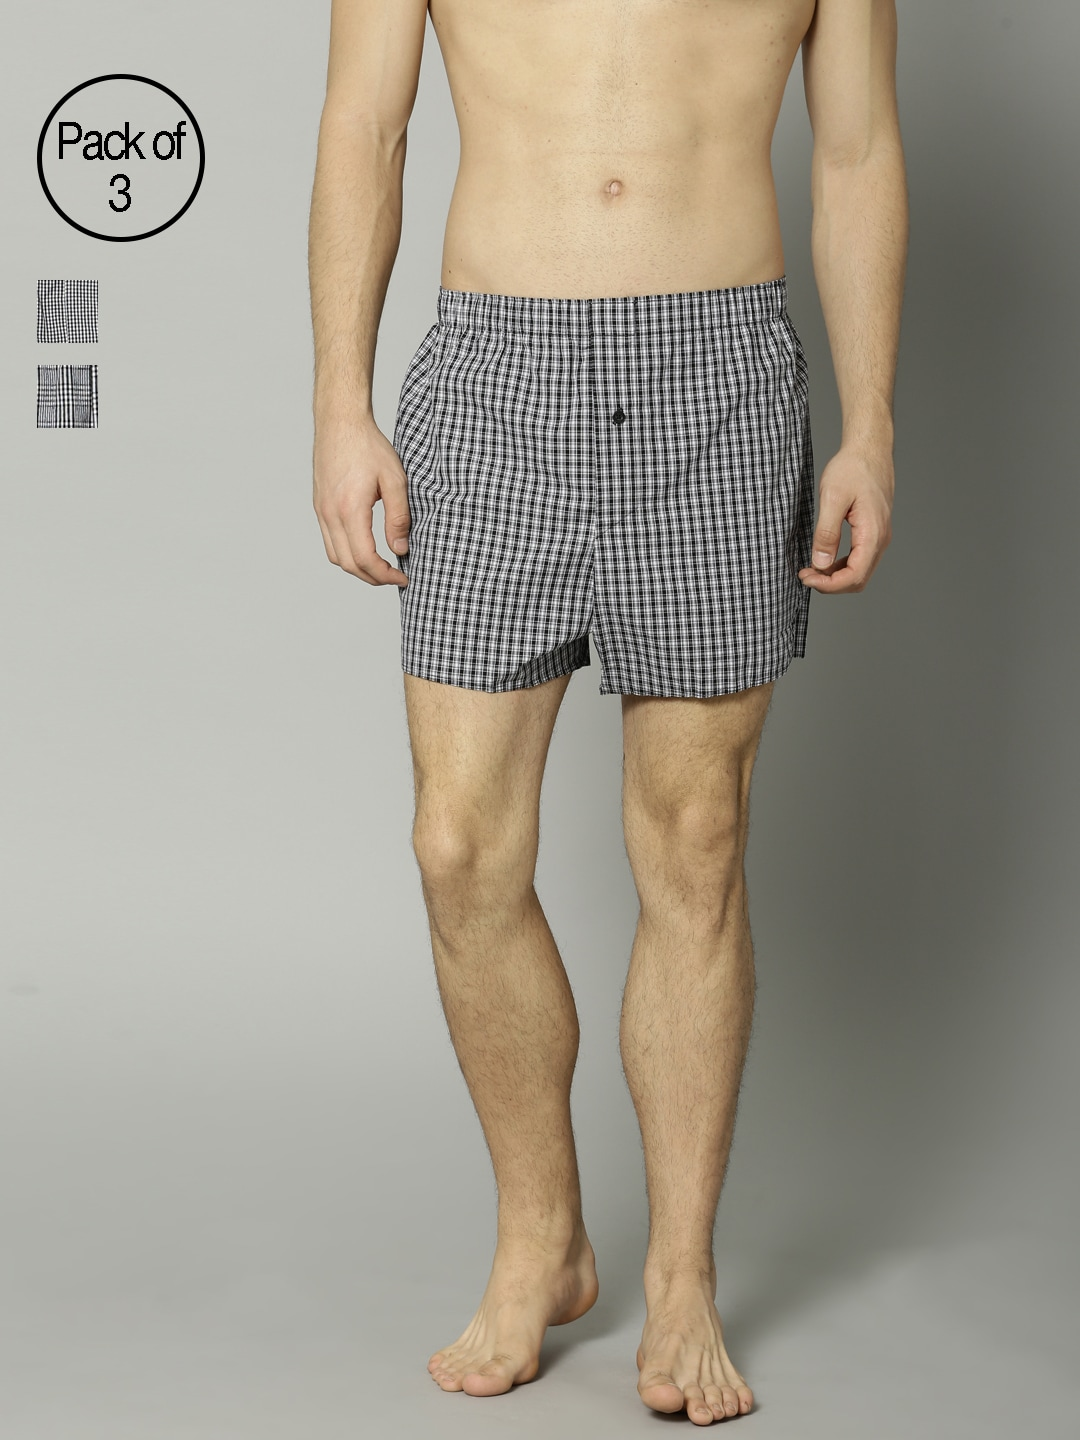 Marks & Spencer Men Pack of 3 Checked Boxers 3685 image